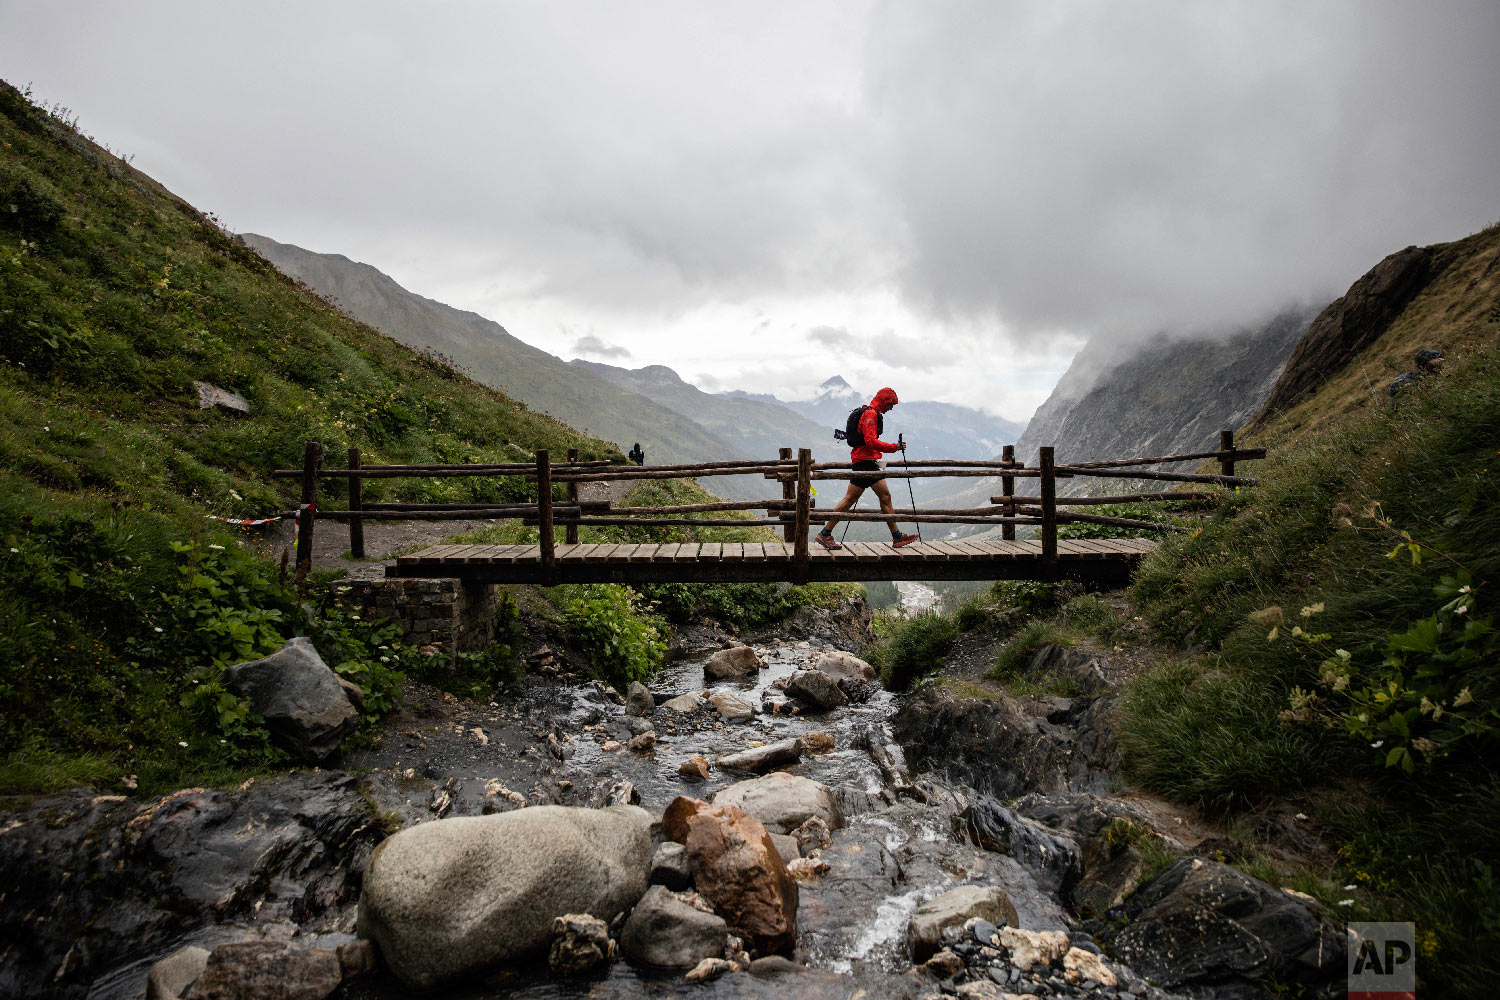 A competitor walks over a bridge on the Grand Col Ferret as he competes in the 170km Ultra-Trail of Mont-Blanc (UTMB) race, near Courmayeur, Italy, Sept 1, 2018. (AP Photo/Laurent Cipriani)